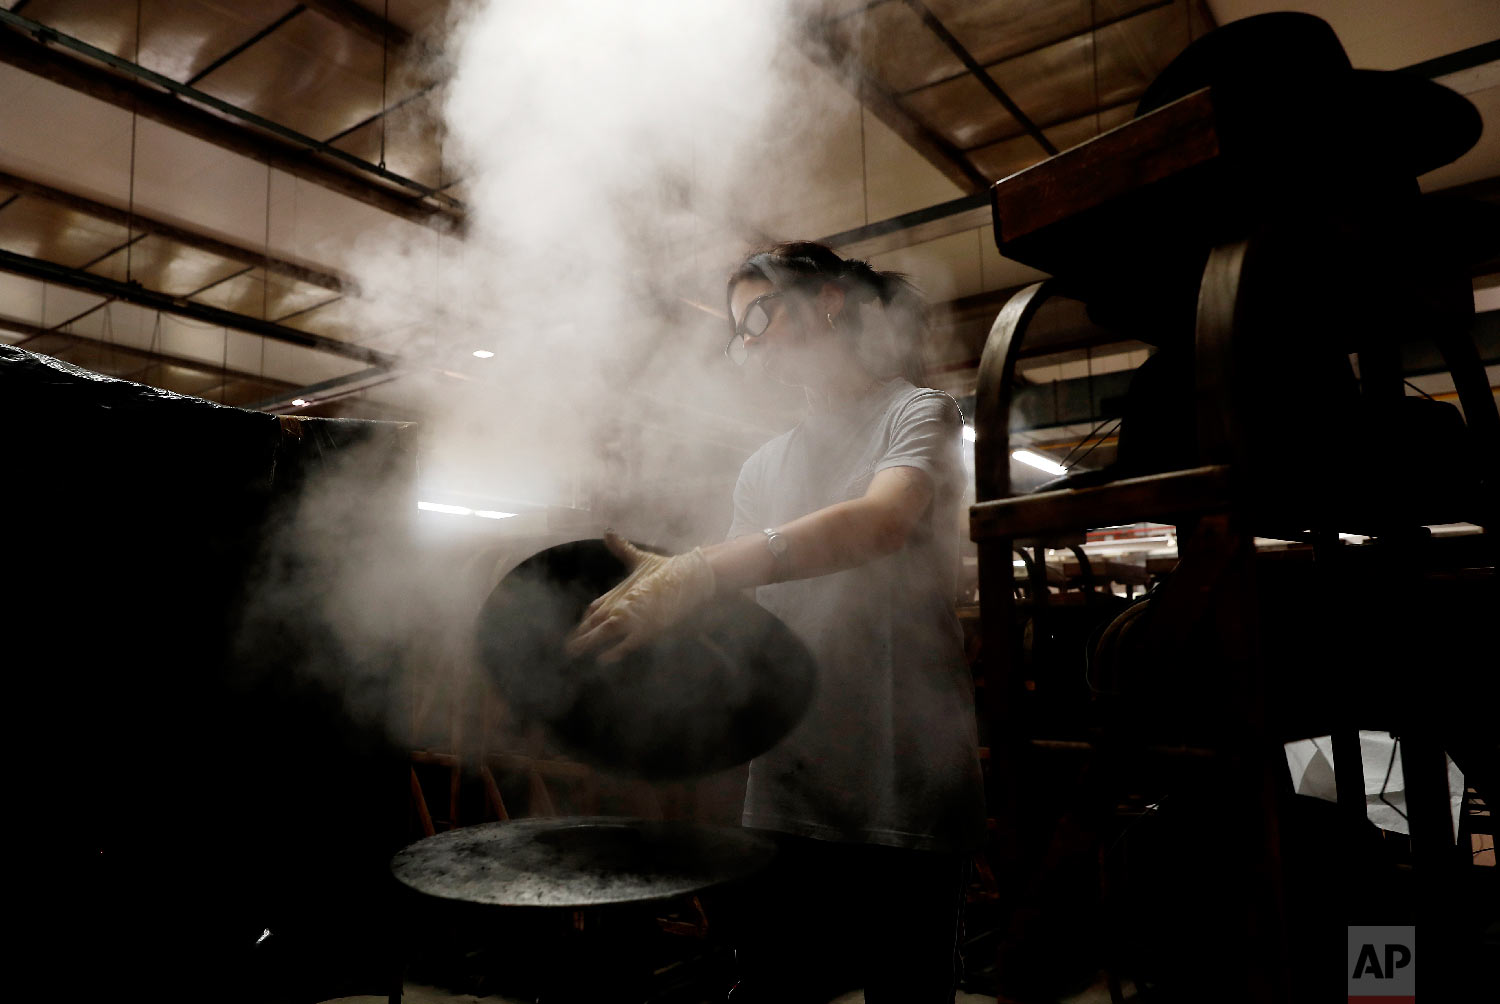 Steam is used to mould a fur hat in Borsalino's hat factory, in Spinetta Marengo, near Alessandria, Italy, Thursday, Jan. 17, 2019. (AP Photo/Antonio Calanni)